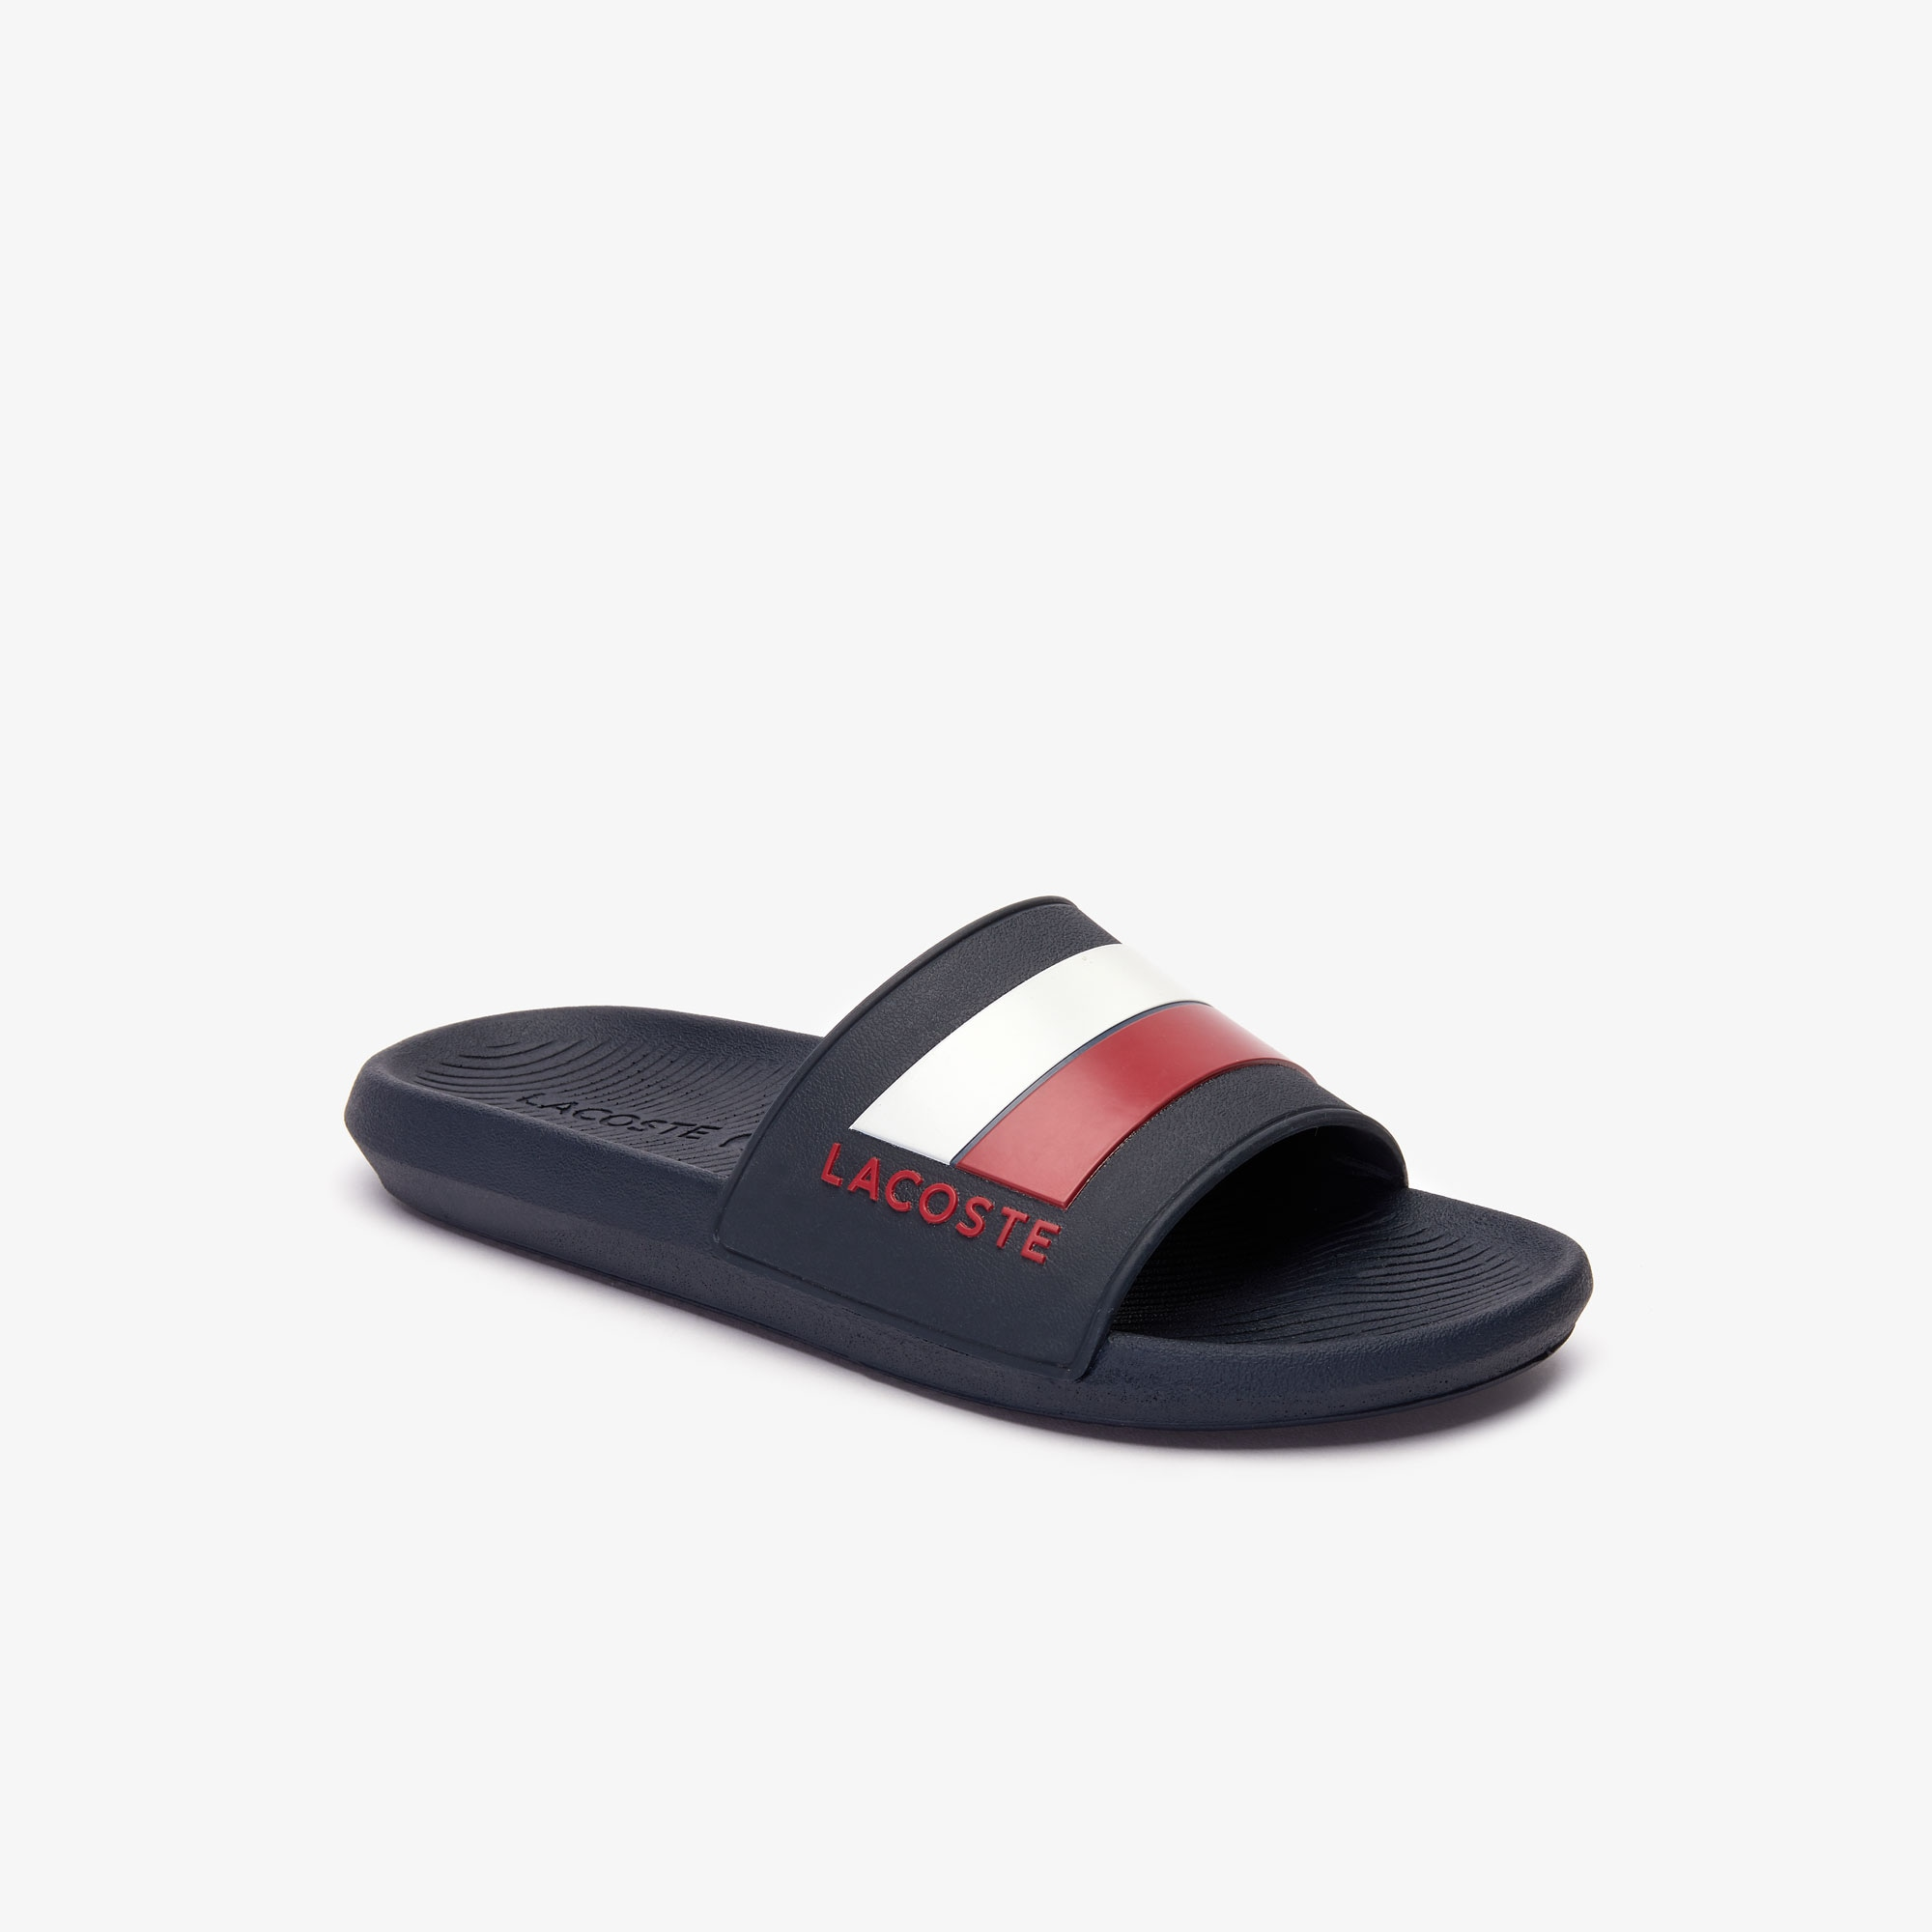 Men's Tricolor Rubber Slides